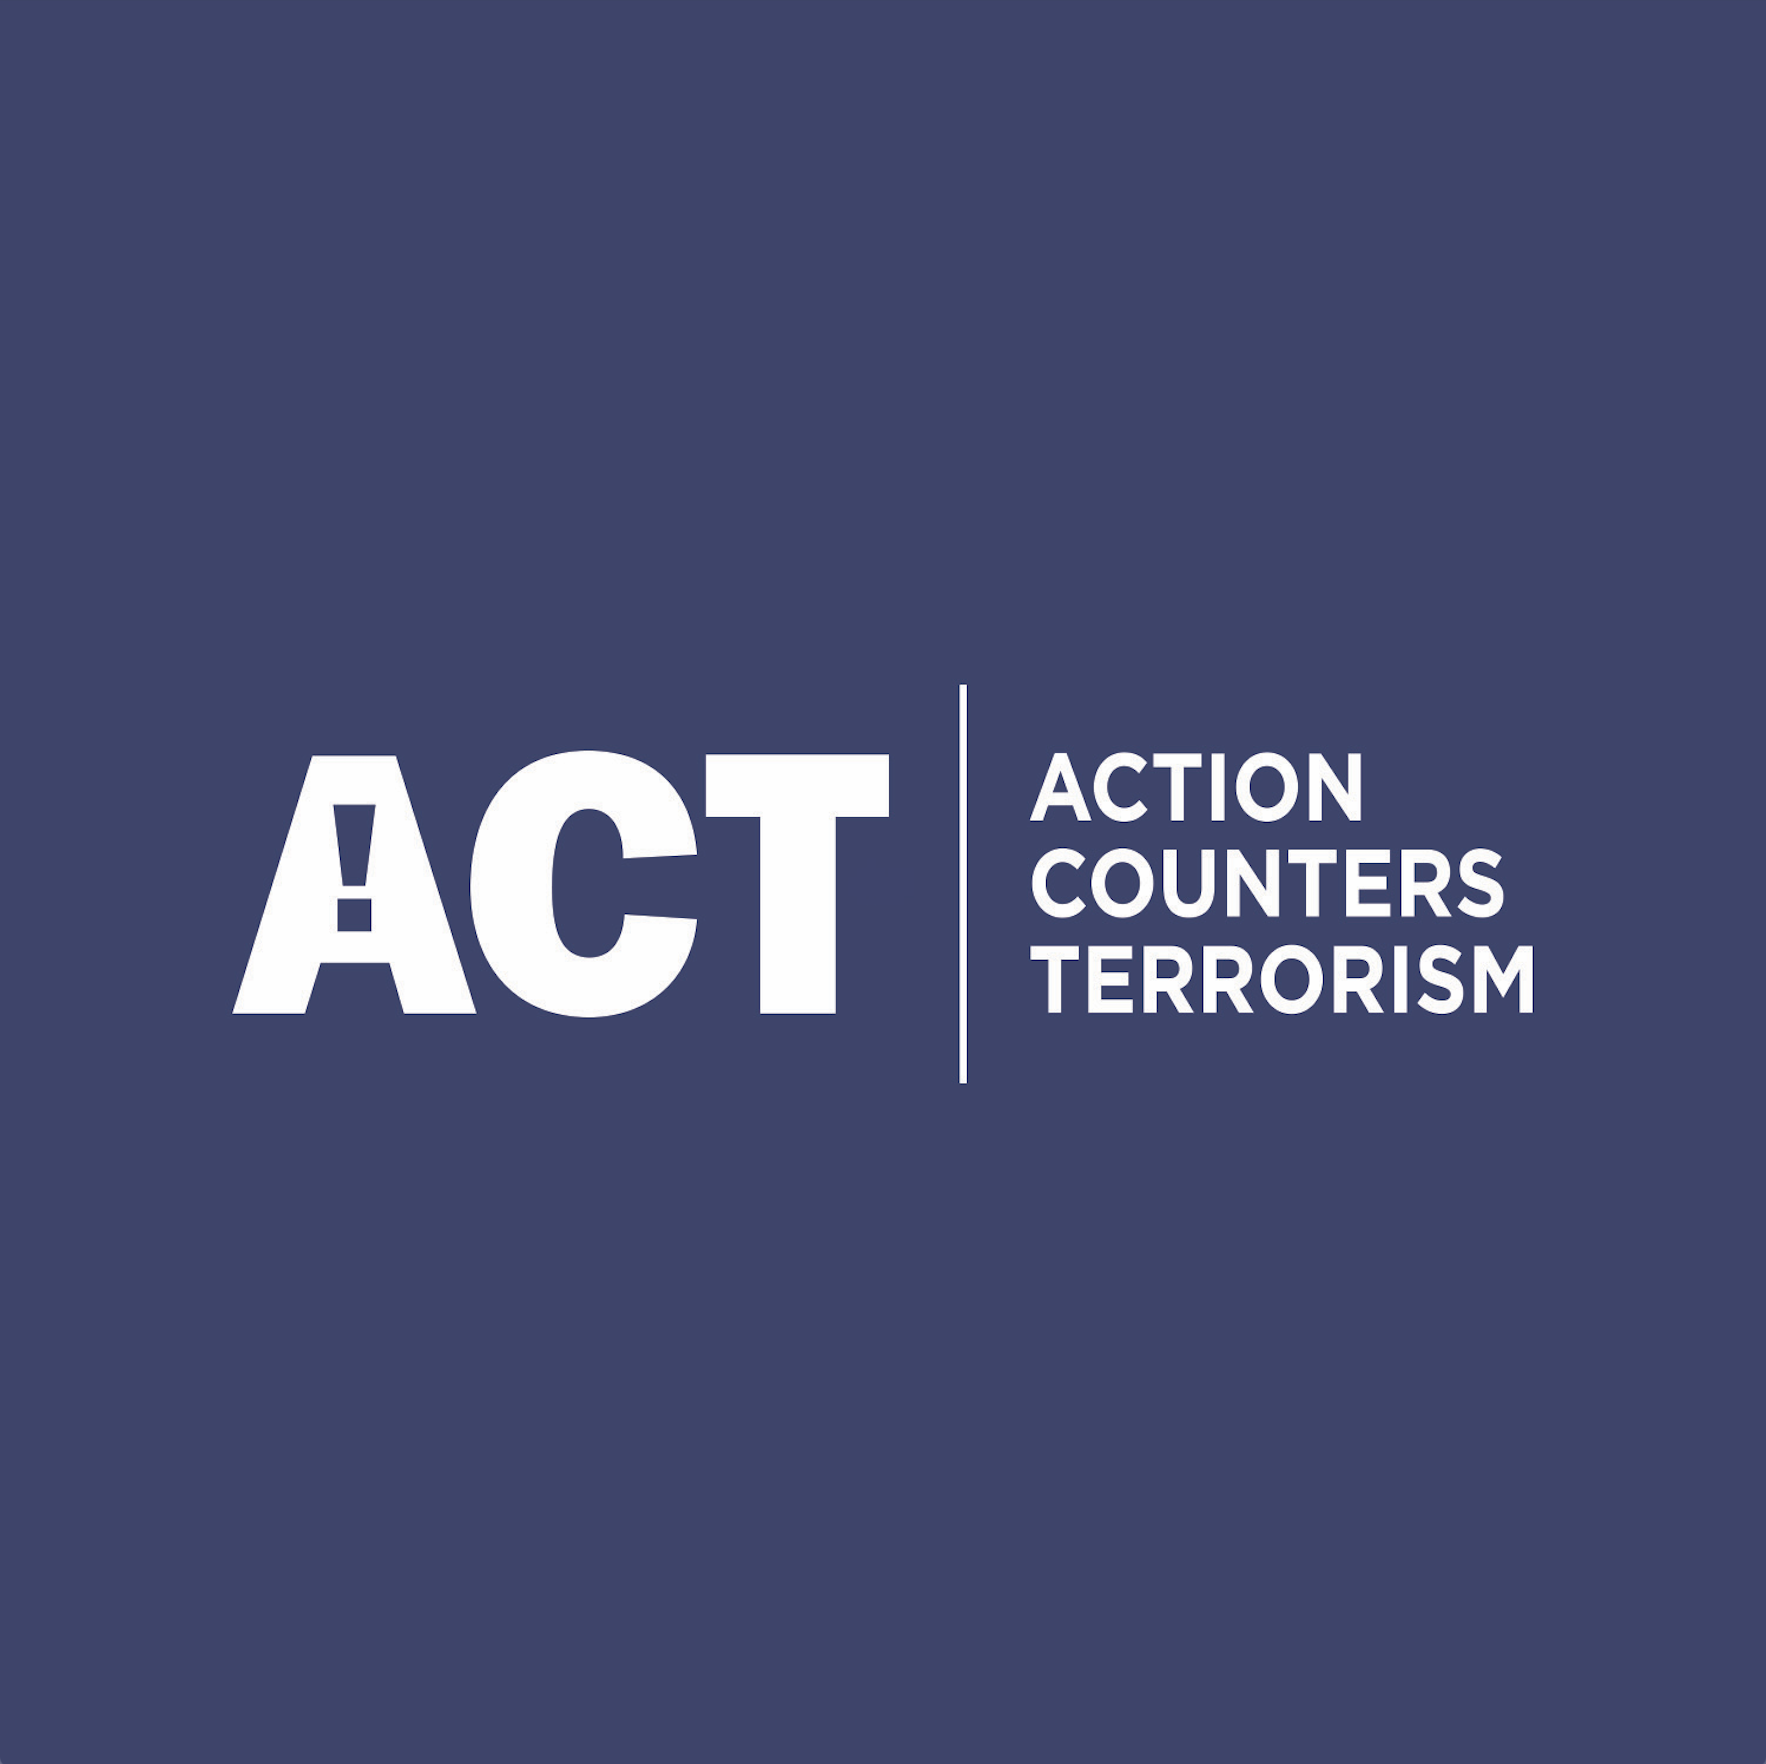 ACT Early | Prevent radicalisation